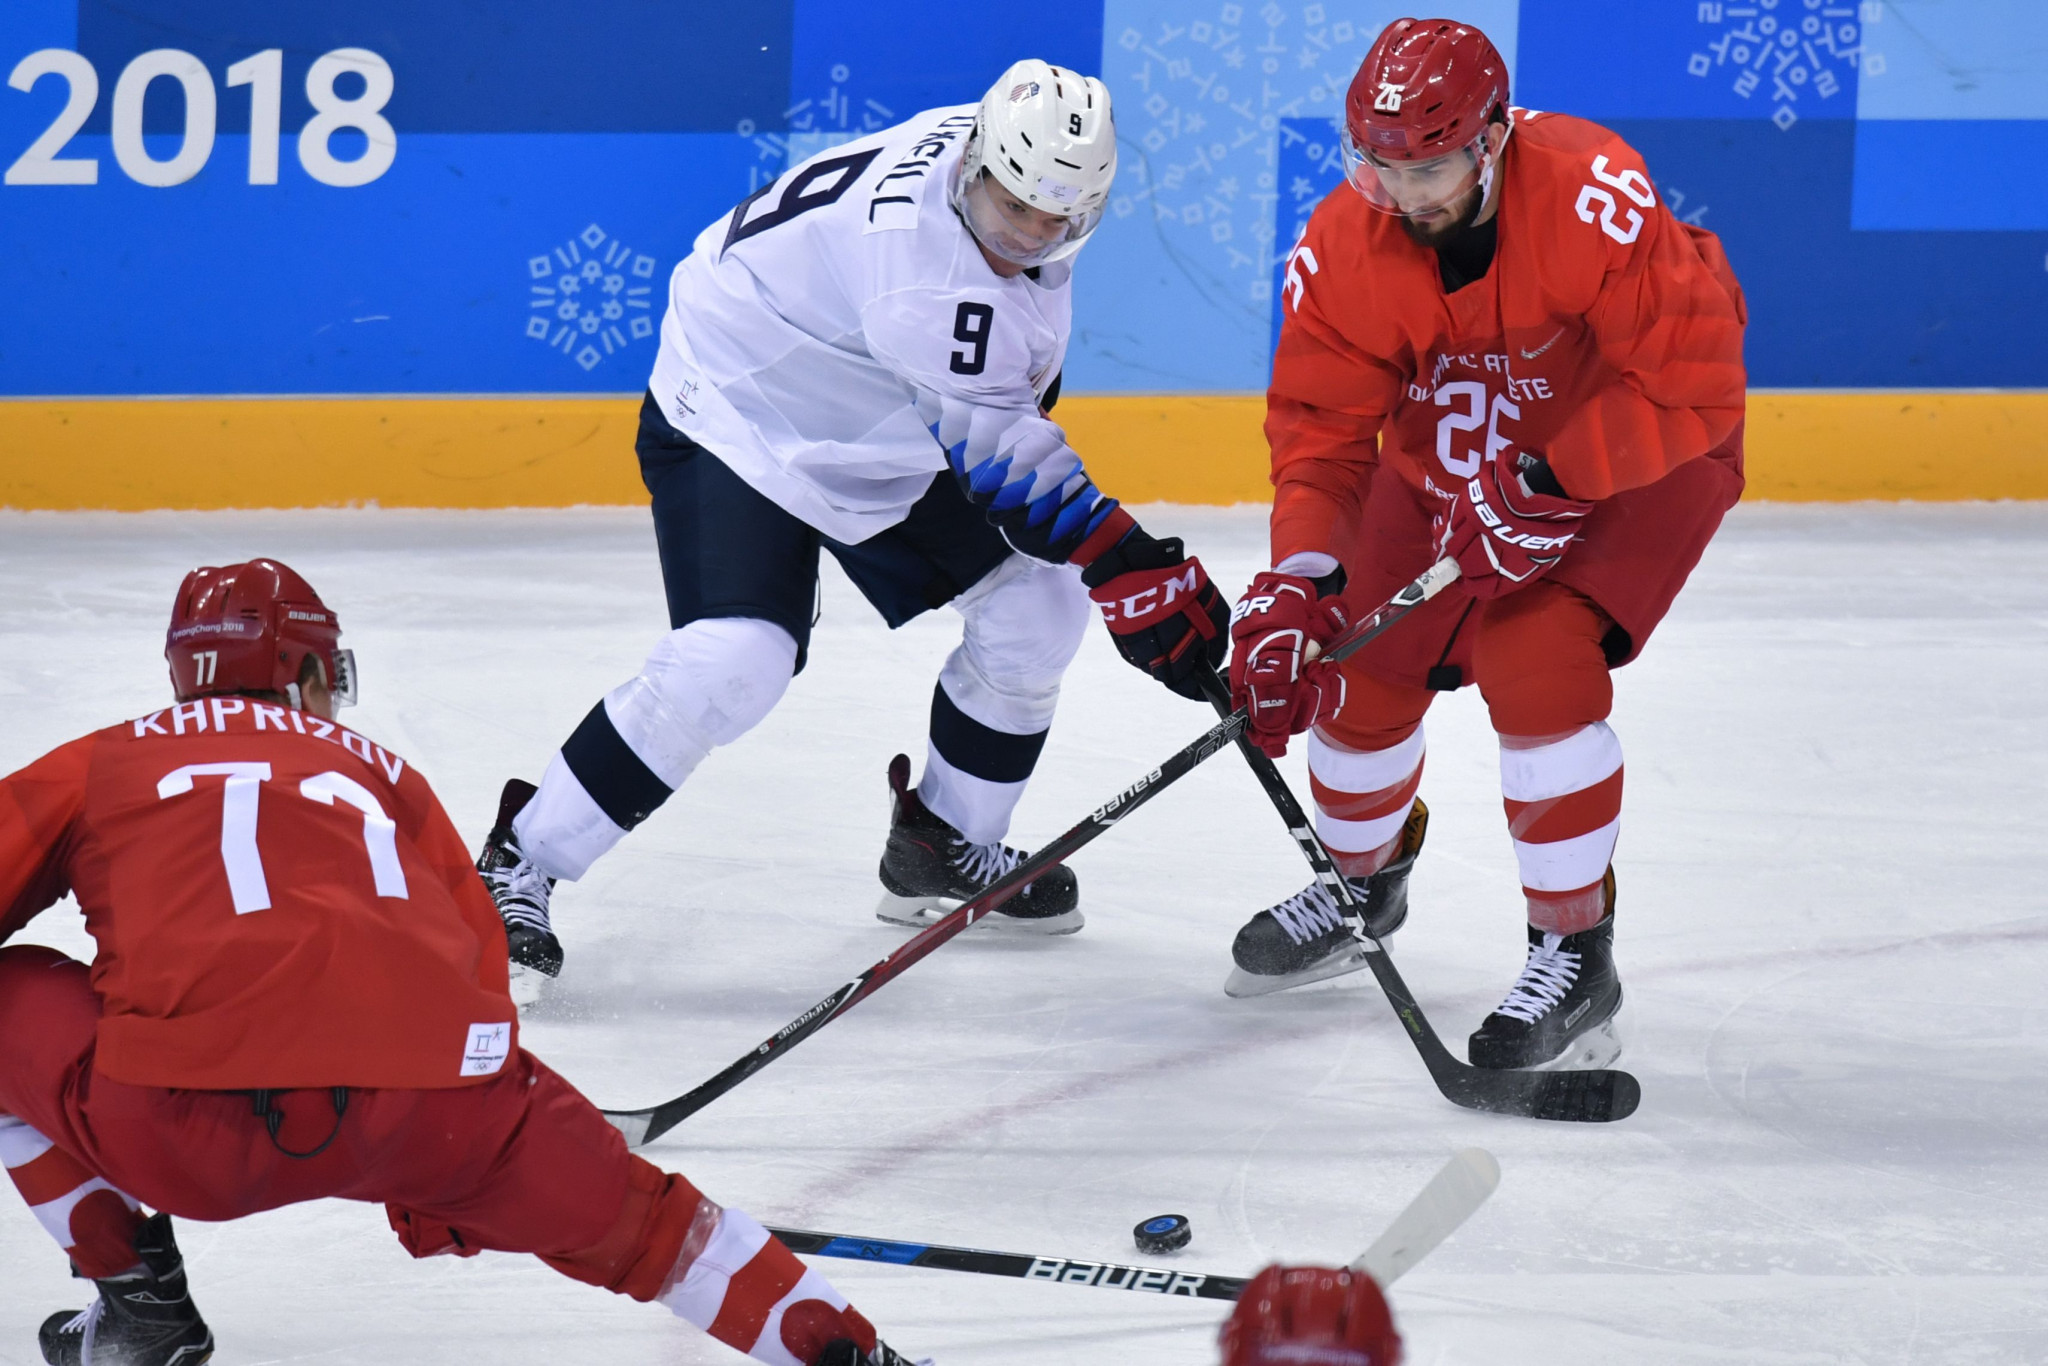 Russian players outclassed their American opponents in a 4-0 victory ©Getty Images